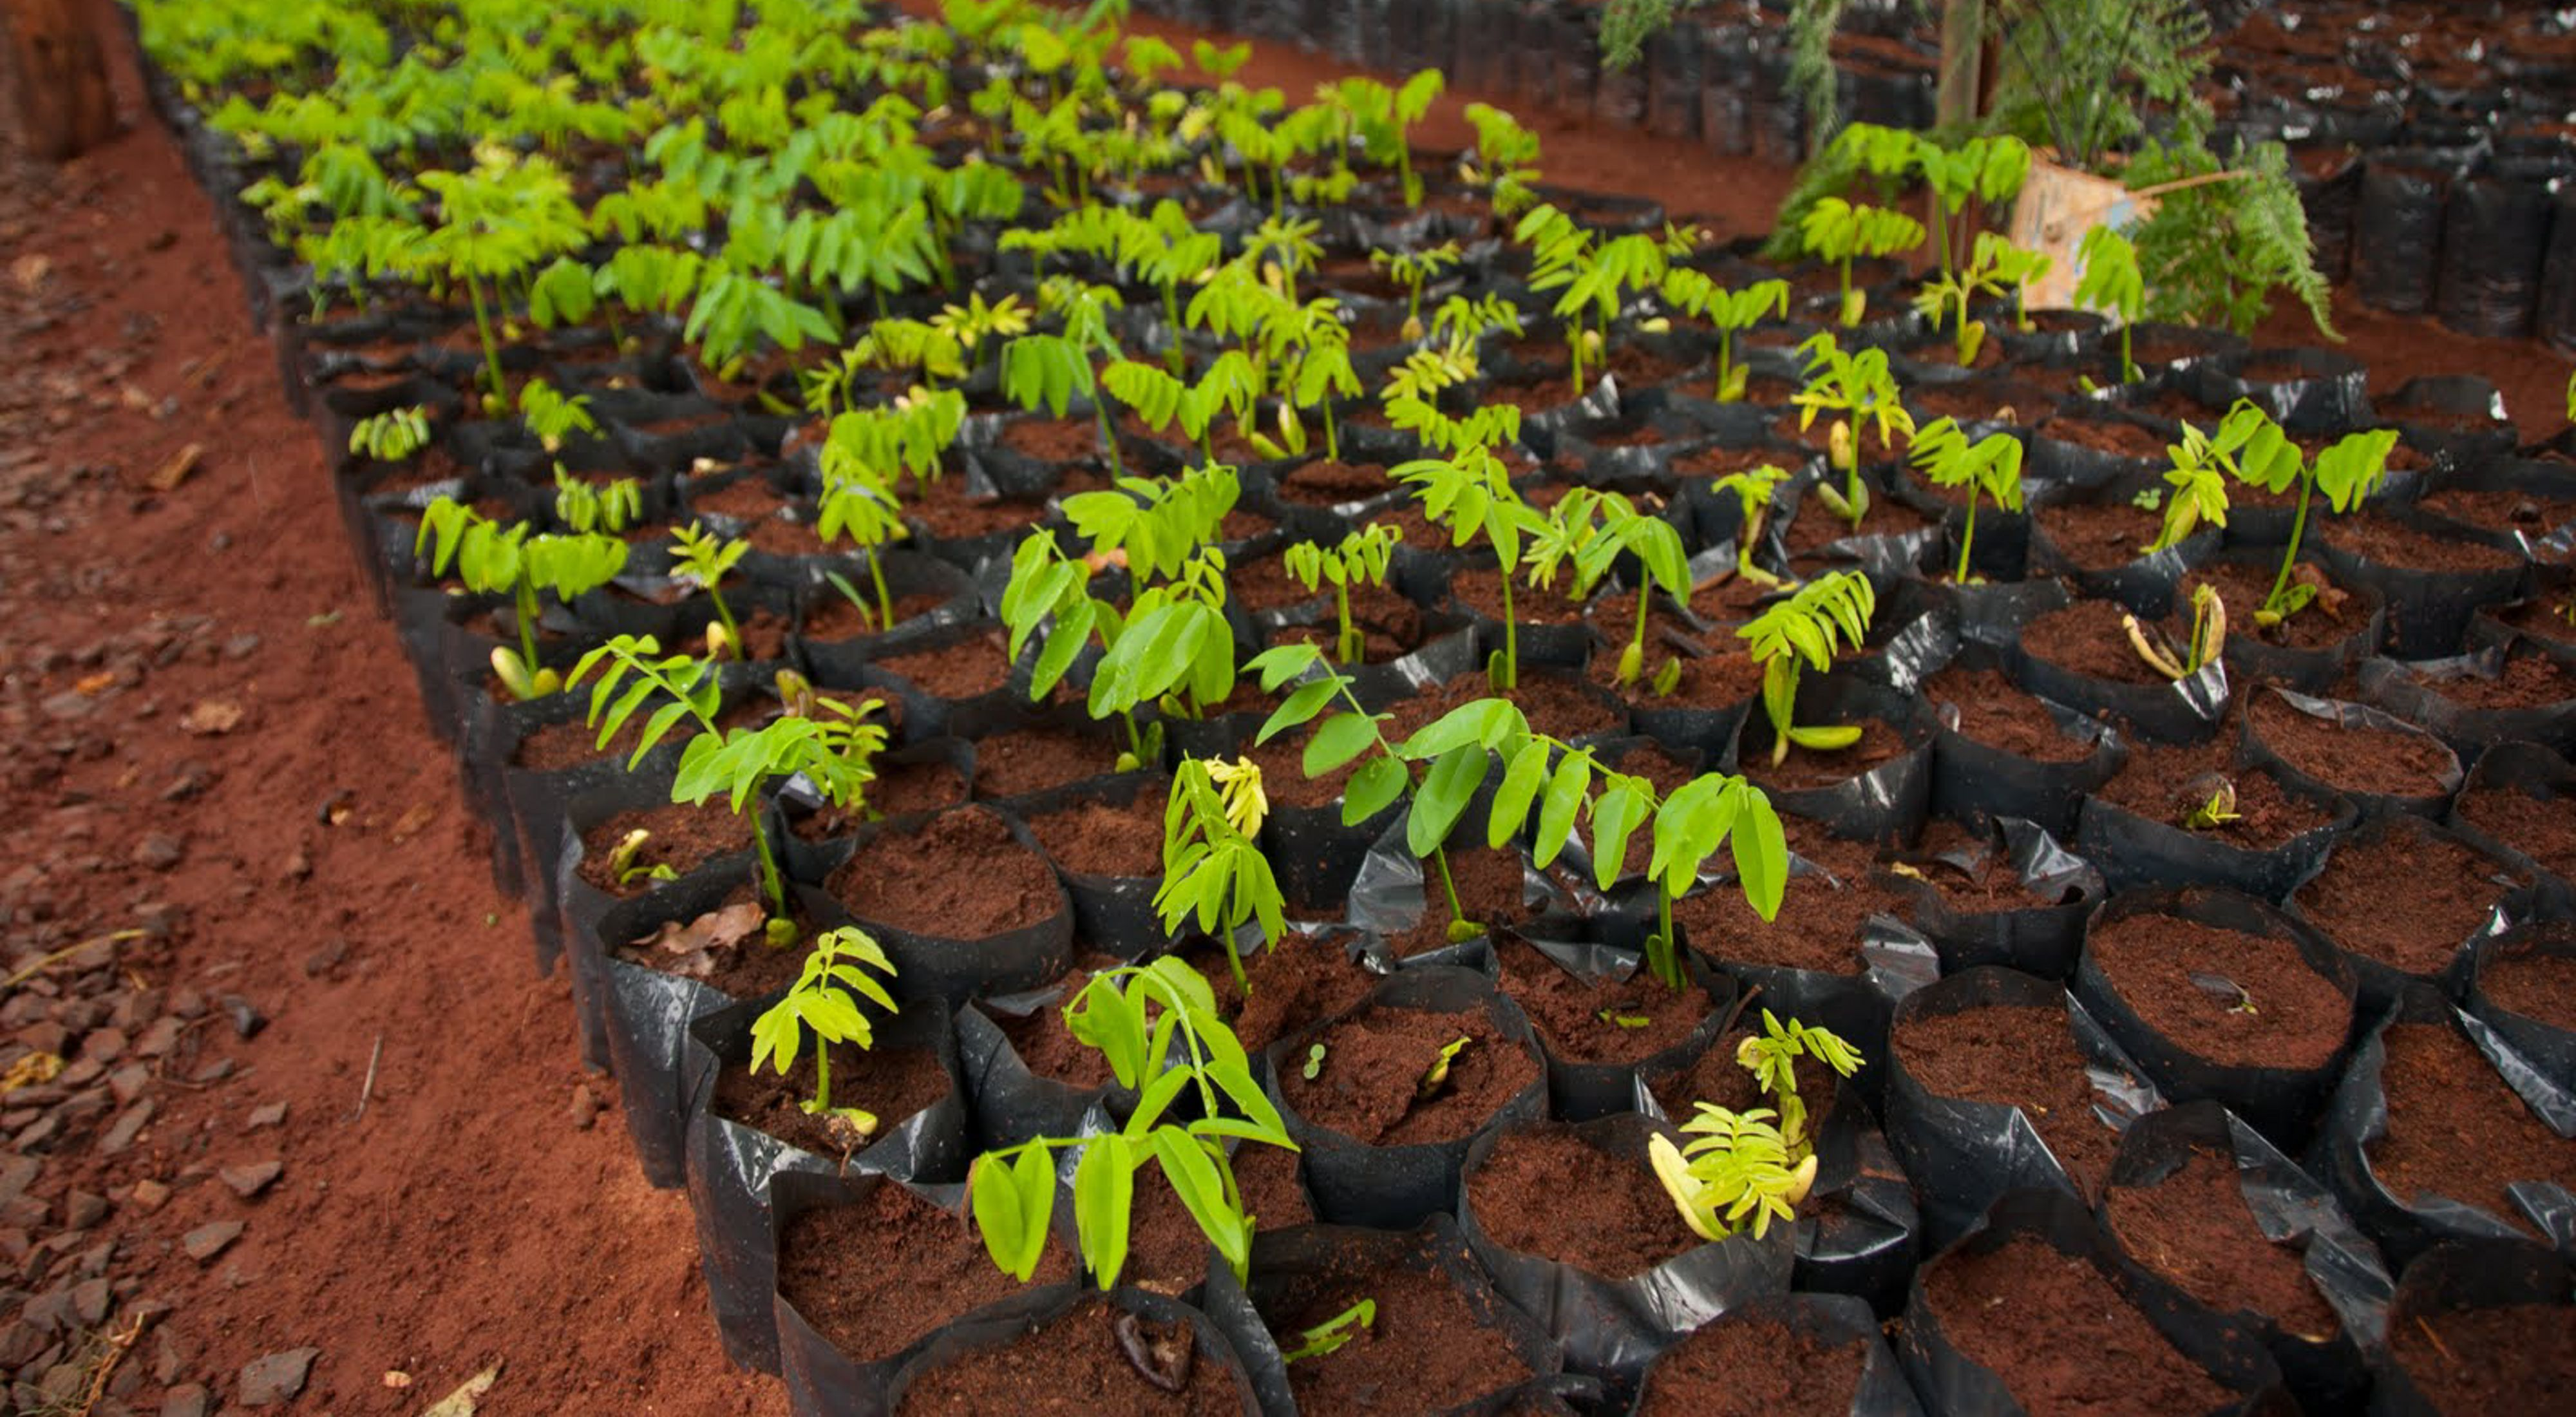 The trees in this nursery were used by Dow for reforestation efforts near their Brazil facility.